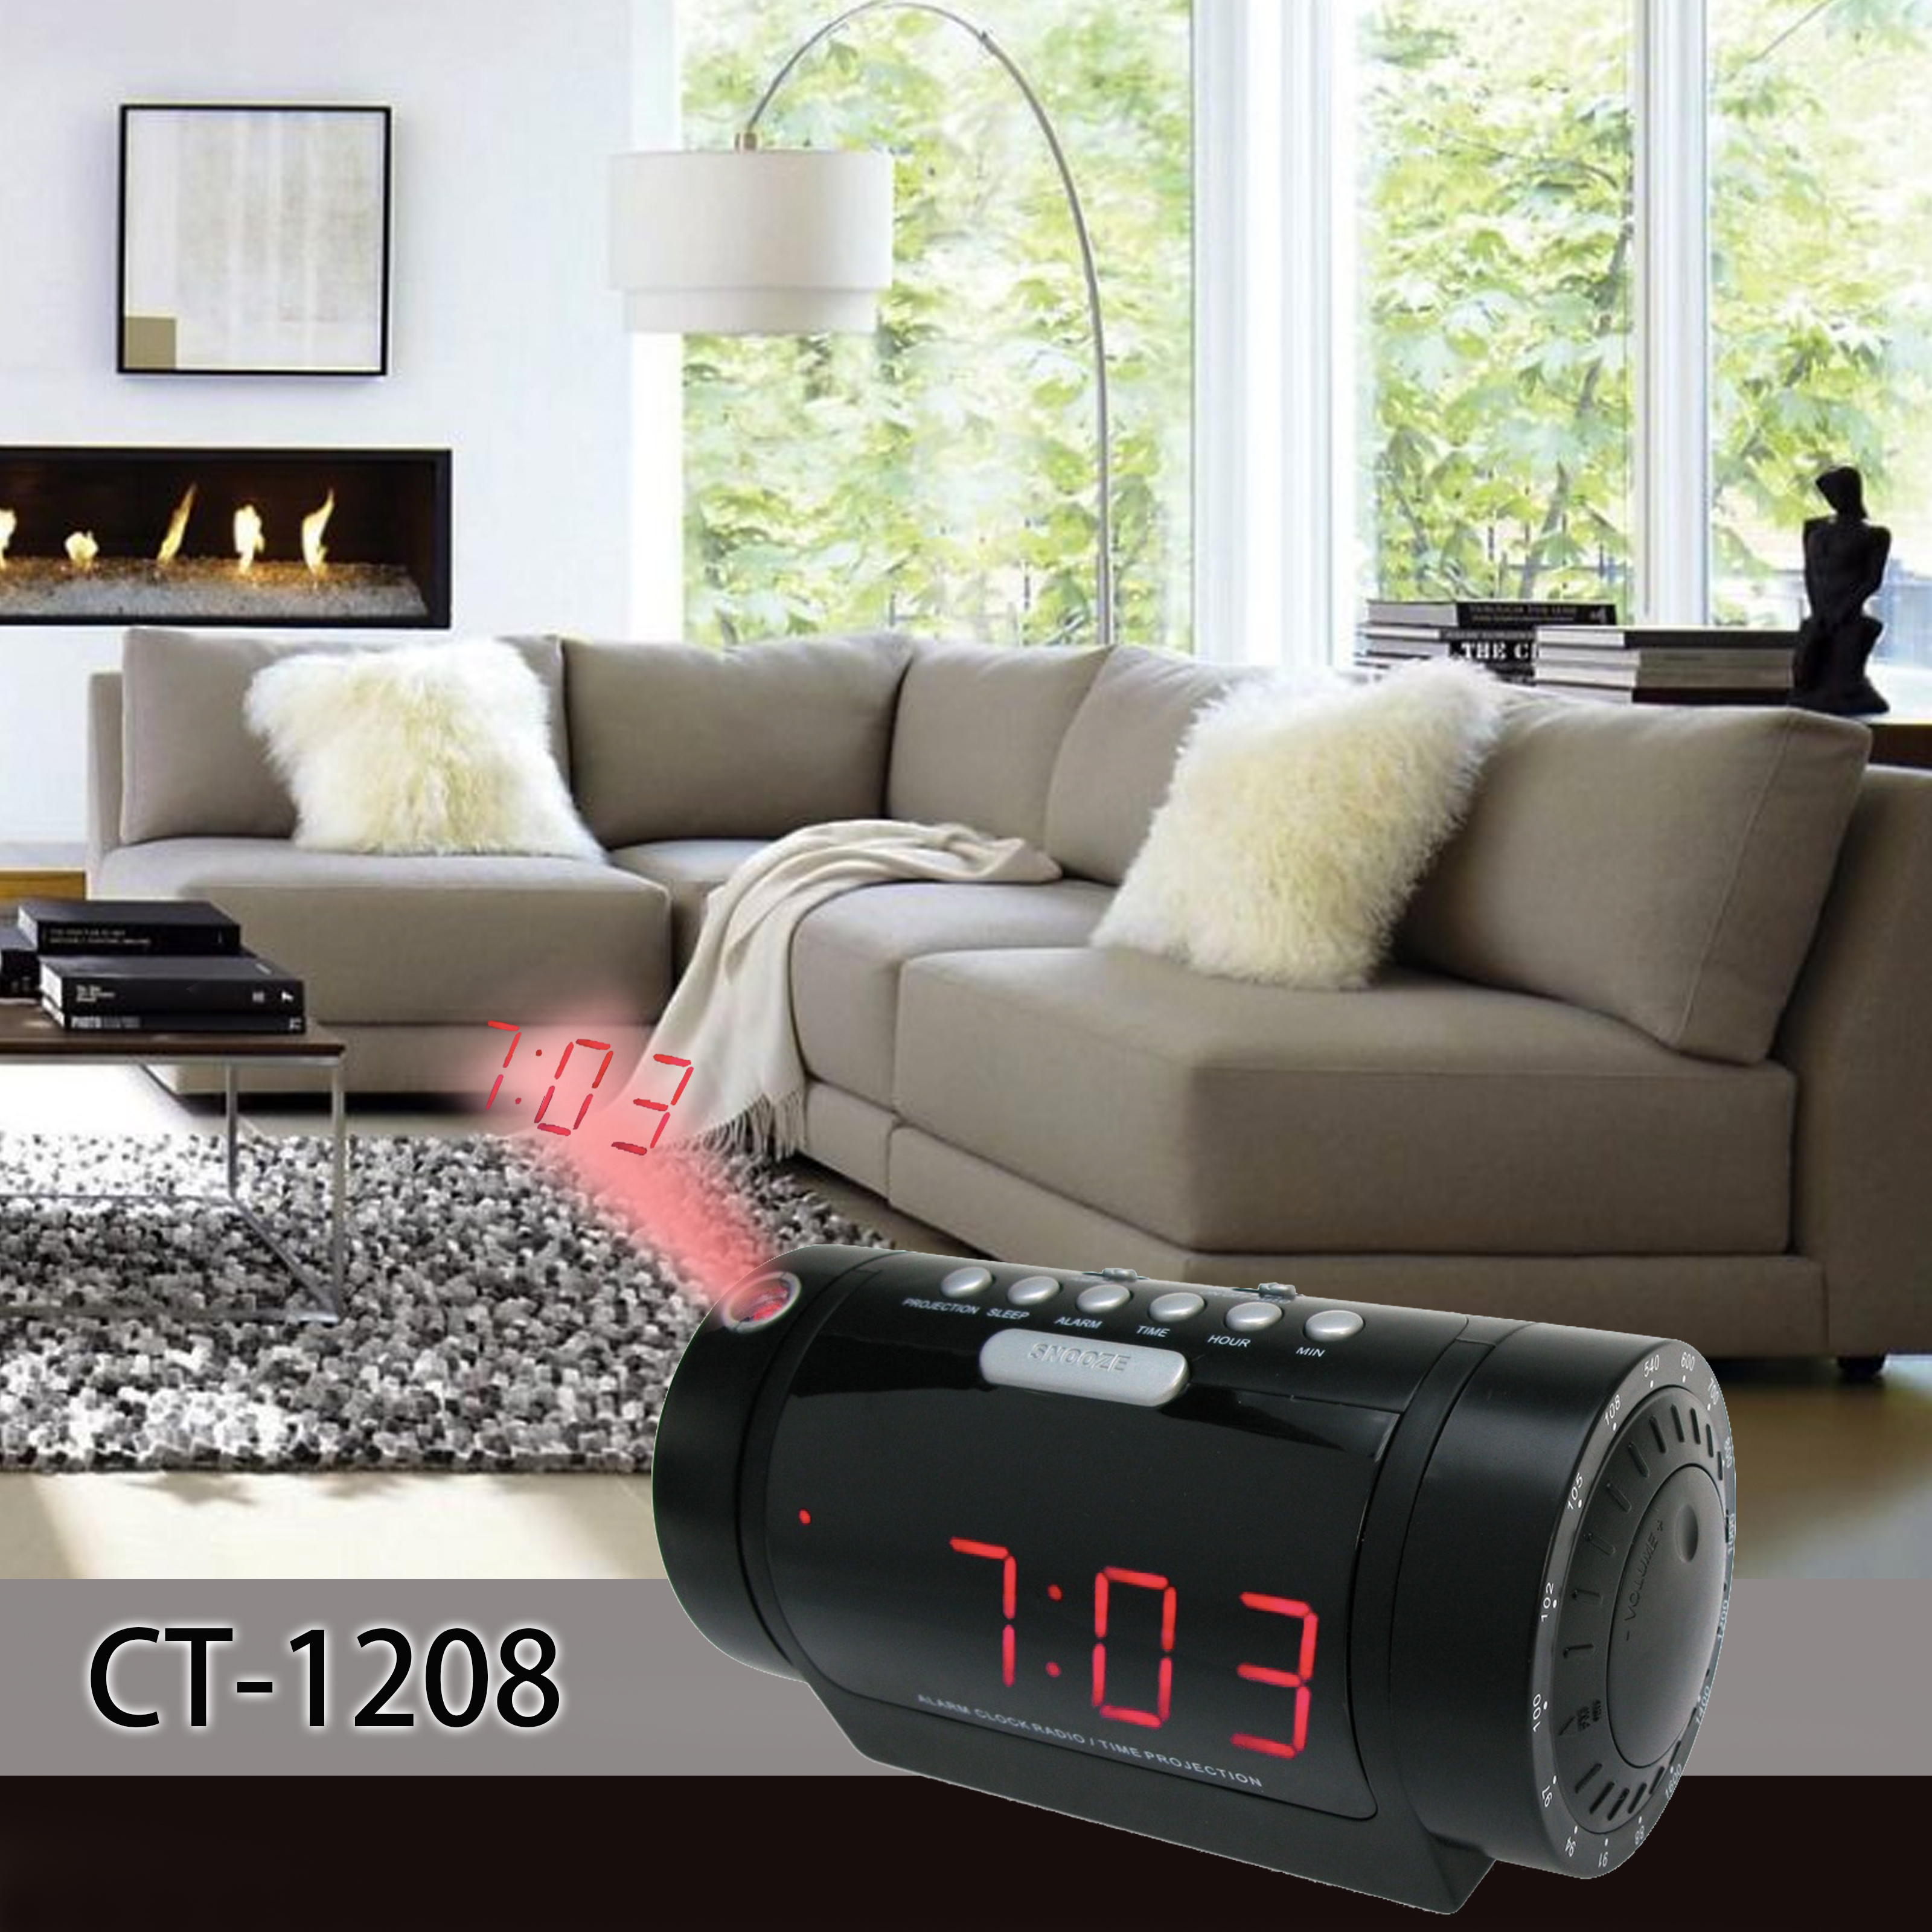 CT-1208 Living Room .jpg